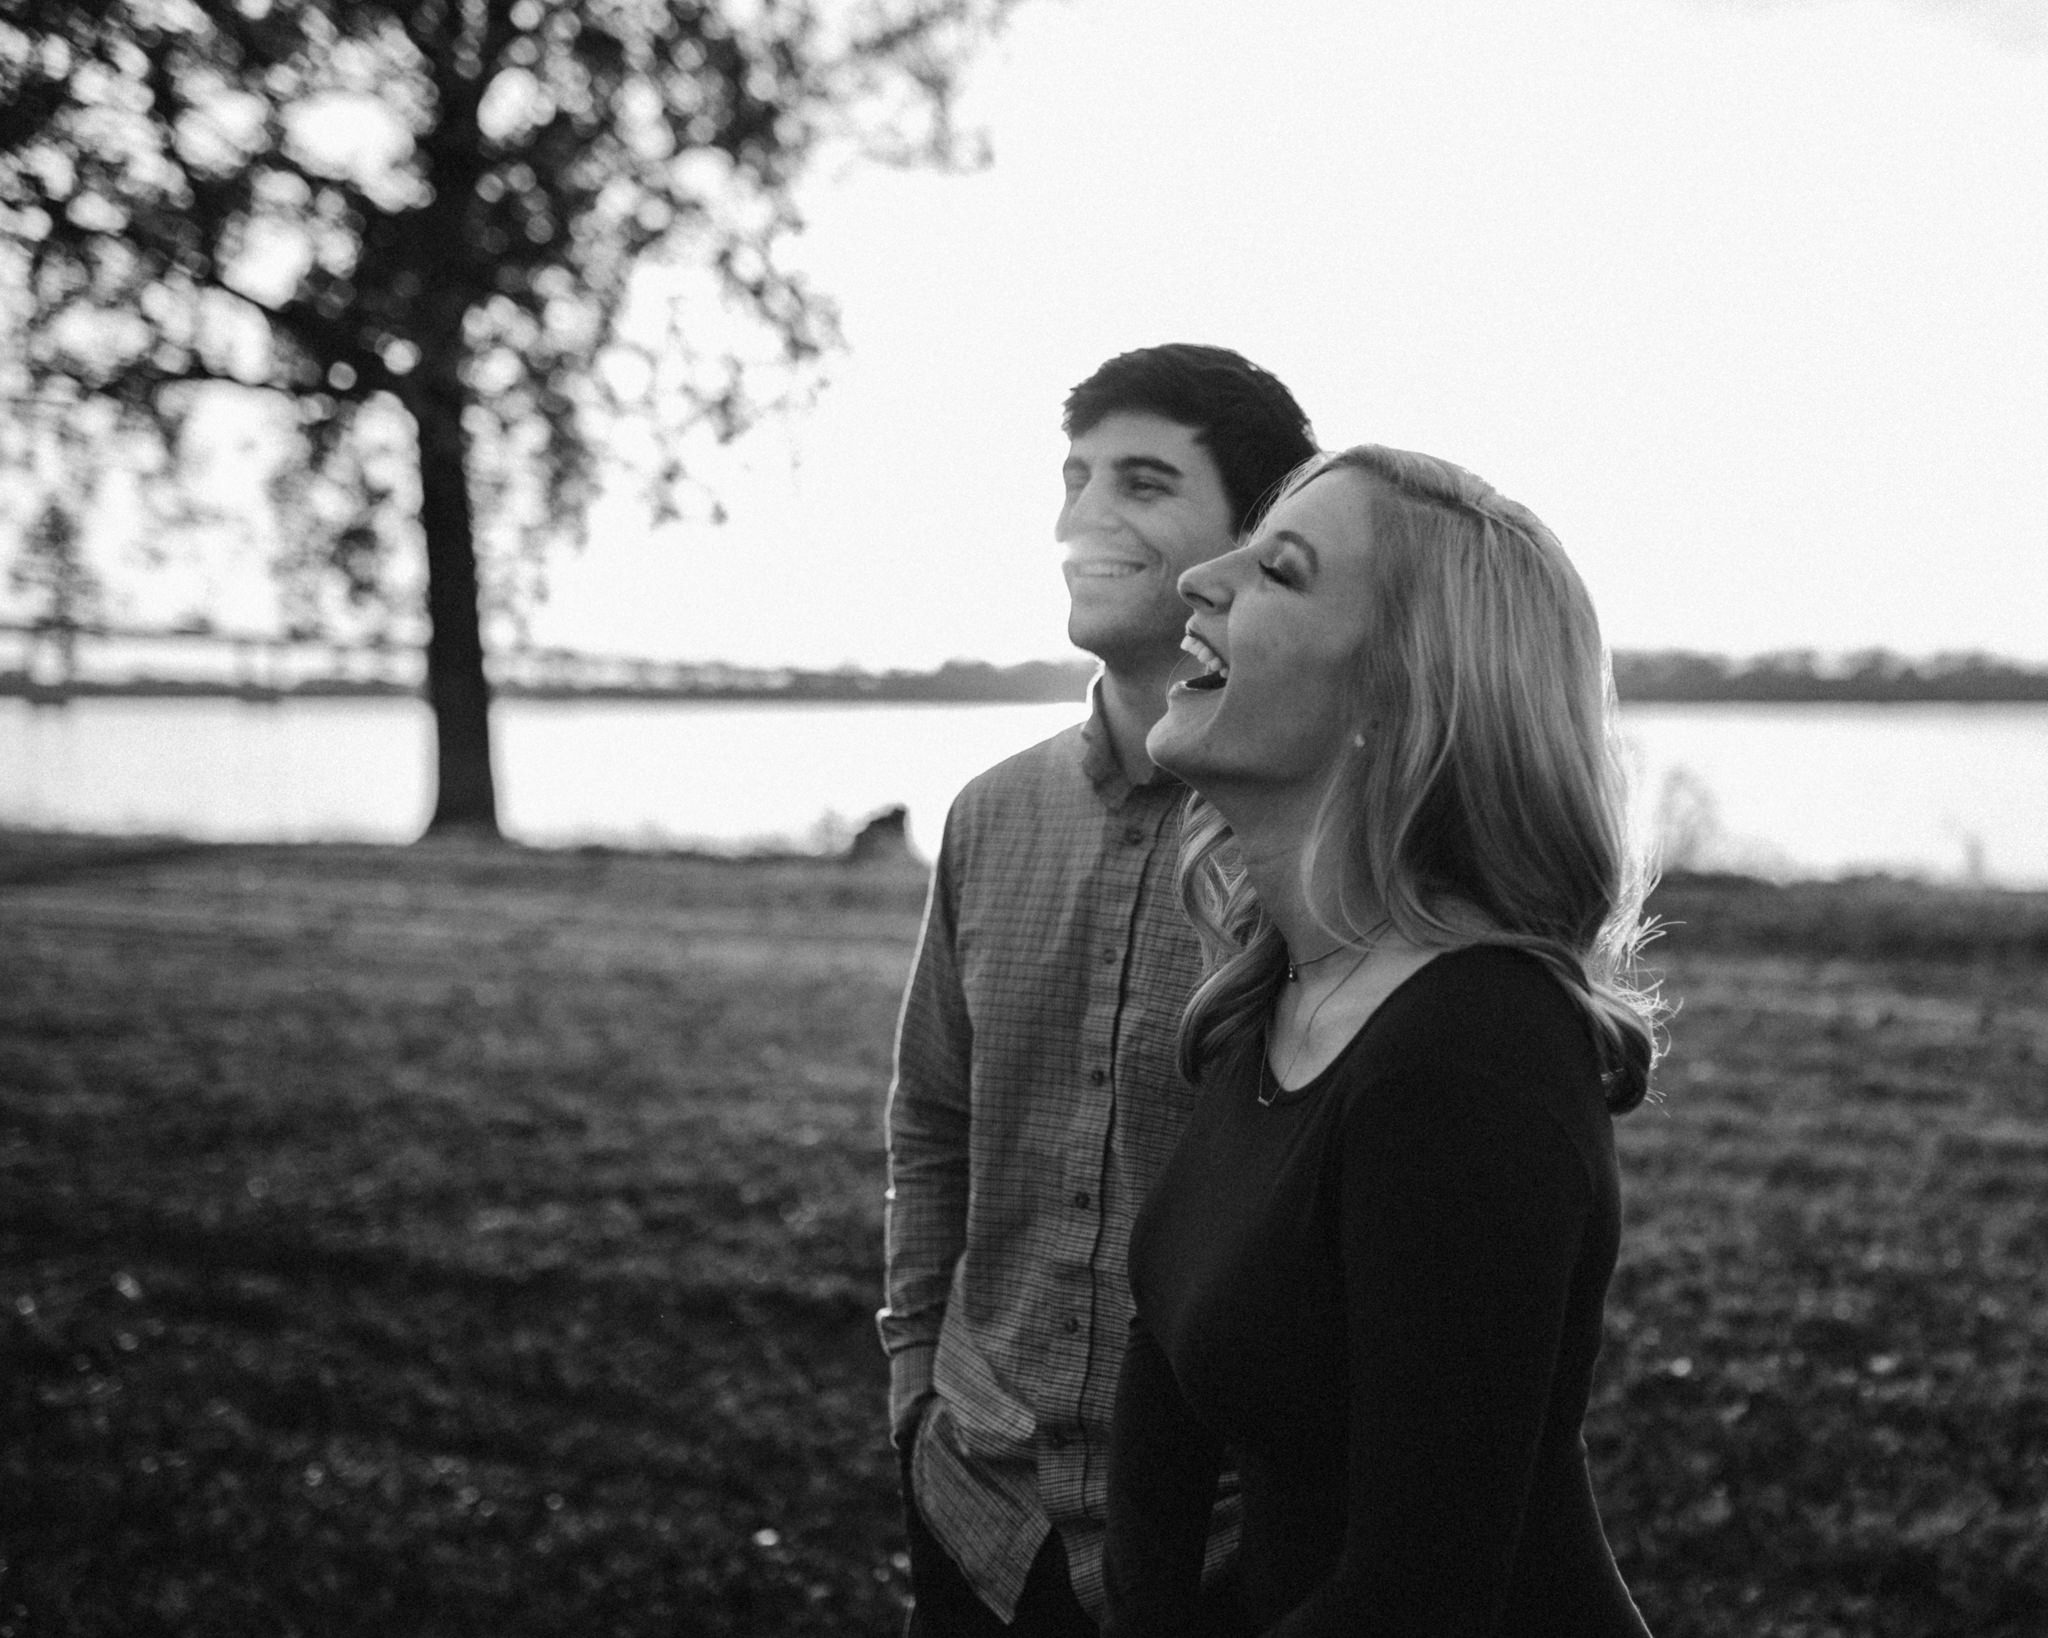 memphis-wedding-photographer-cassie-cook-photography-cafe-keough-engagement-photoshoot-coffee-engagement-30.jpg